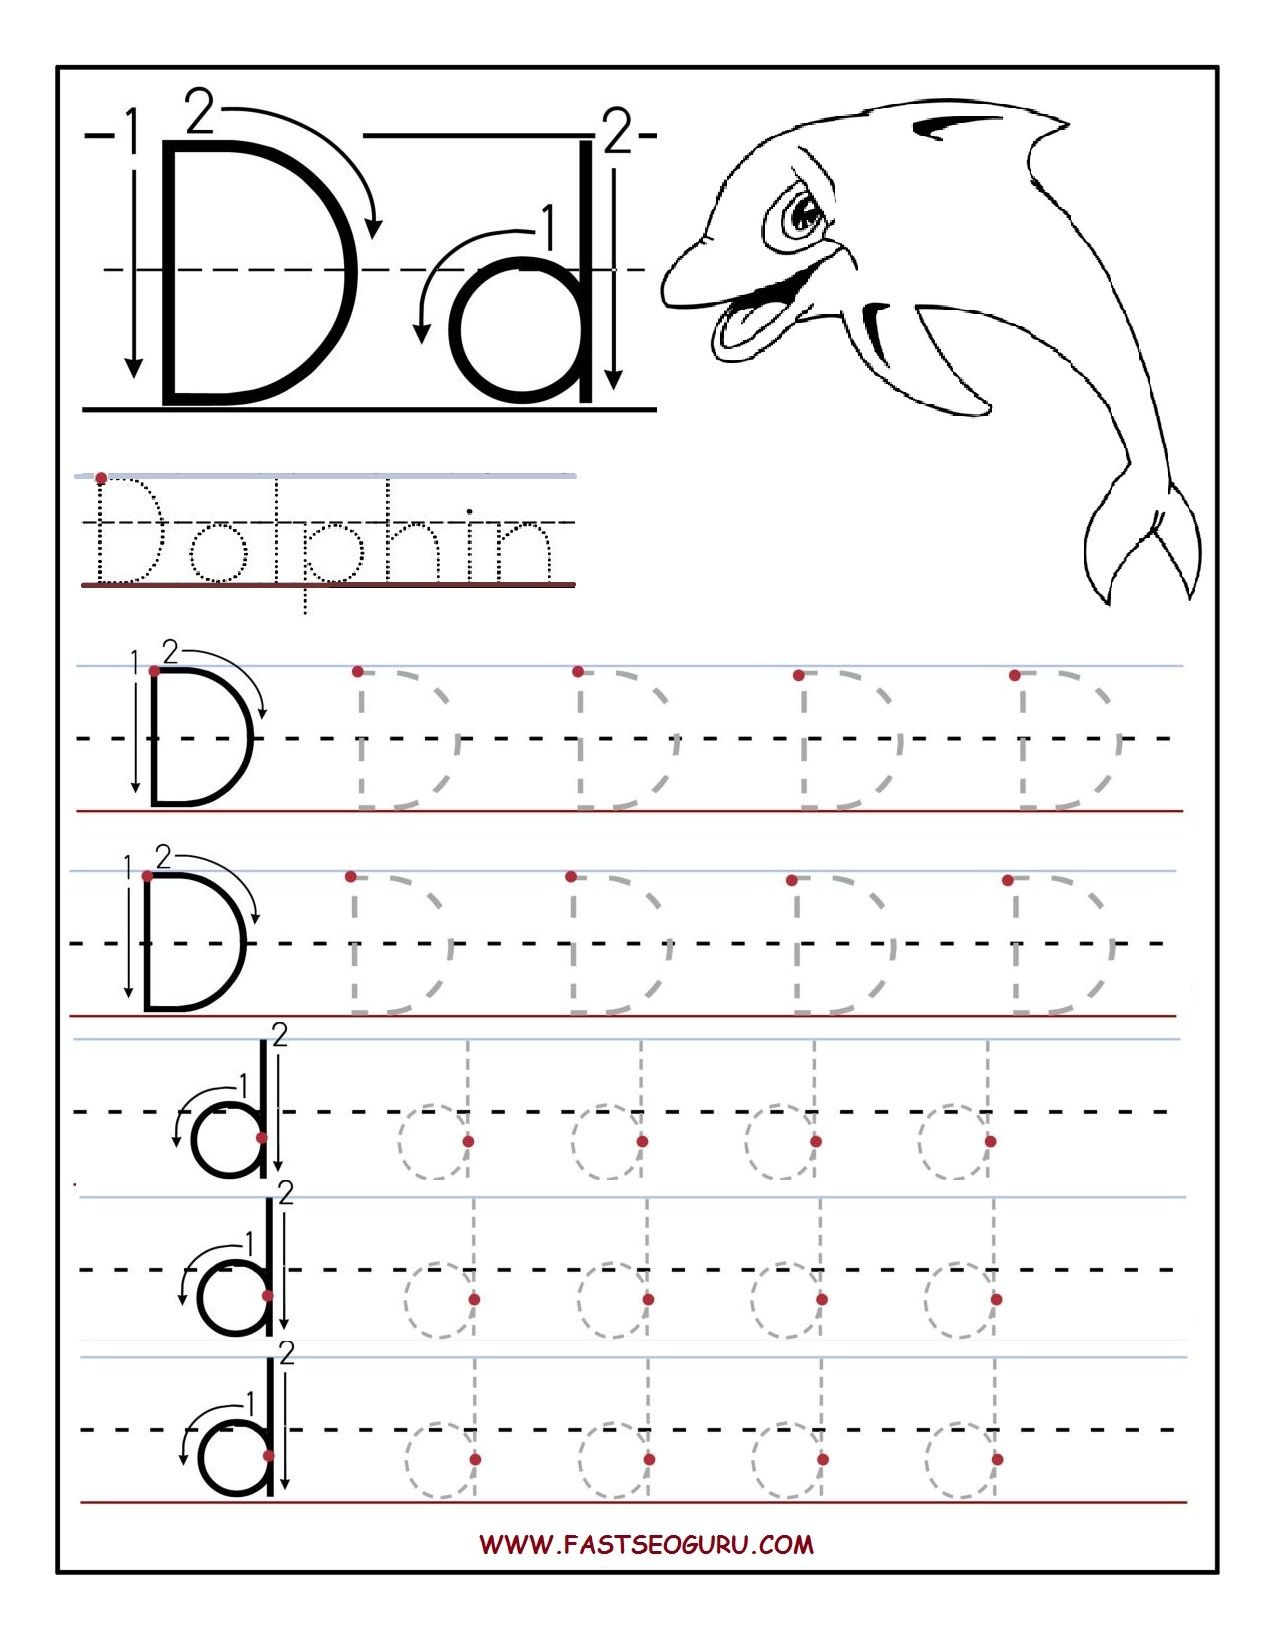 Worksheets Letter D Worksheets For Preschool the letter dd worksheets for kindergarten download or right click image to save